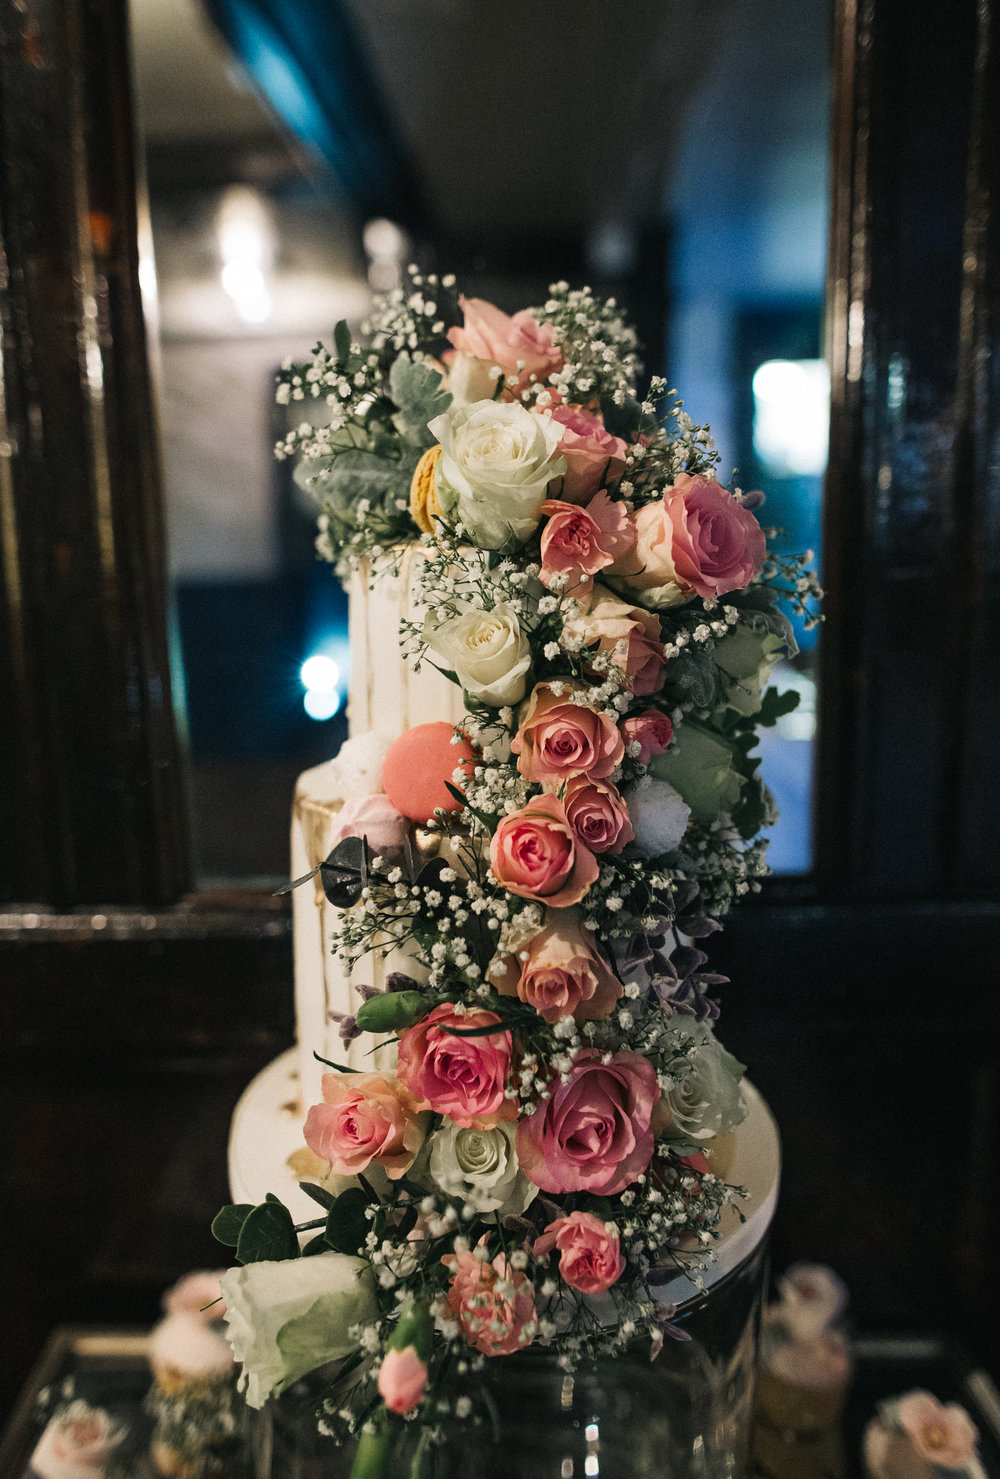 a shot of a tall two tier cake covered in pink roses. cleveland tontine wedding teesside north yorkshire - relaxed and creative wedding photographer